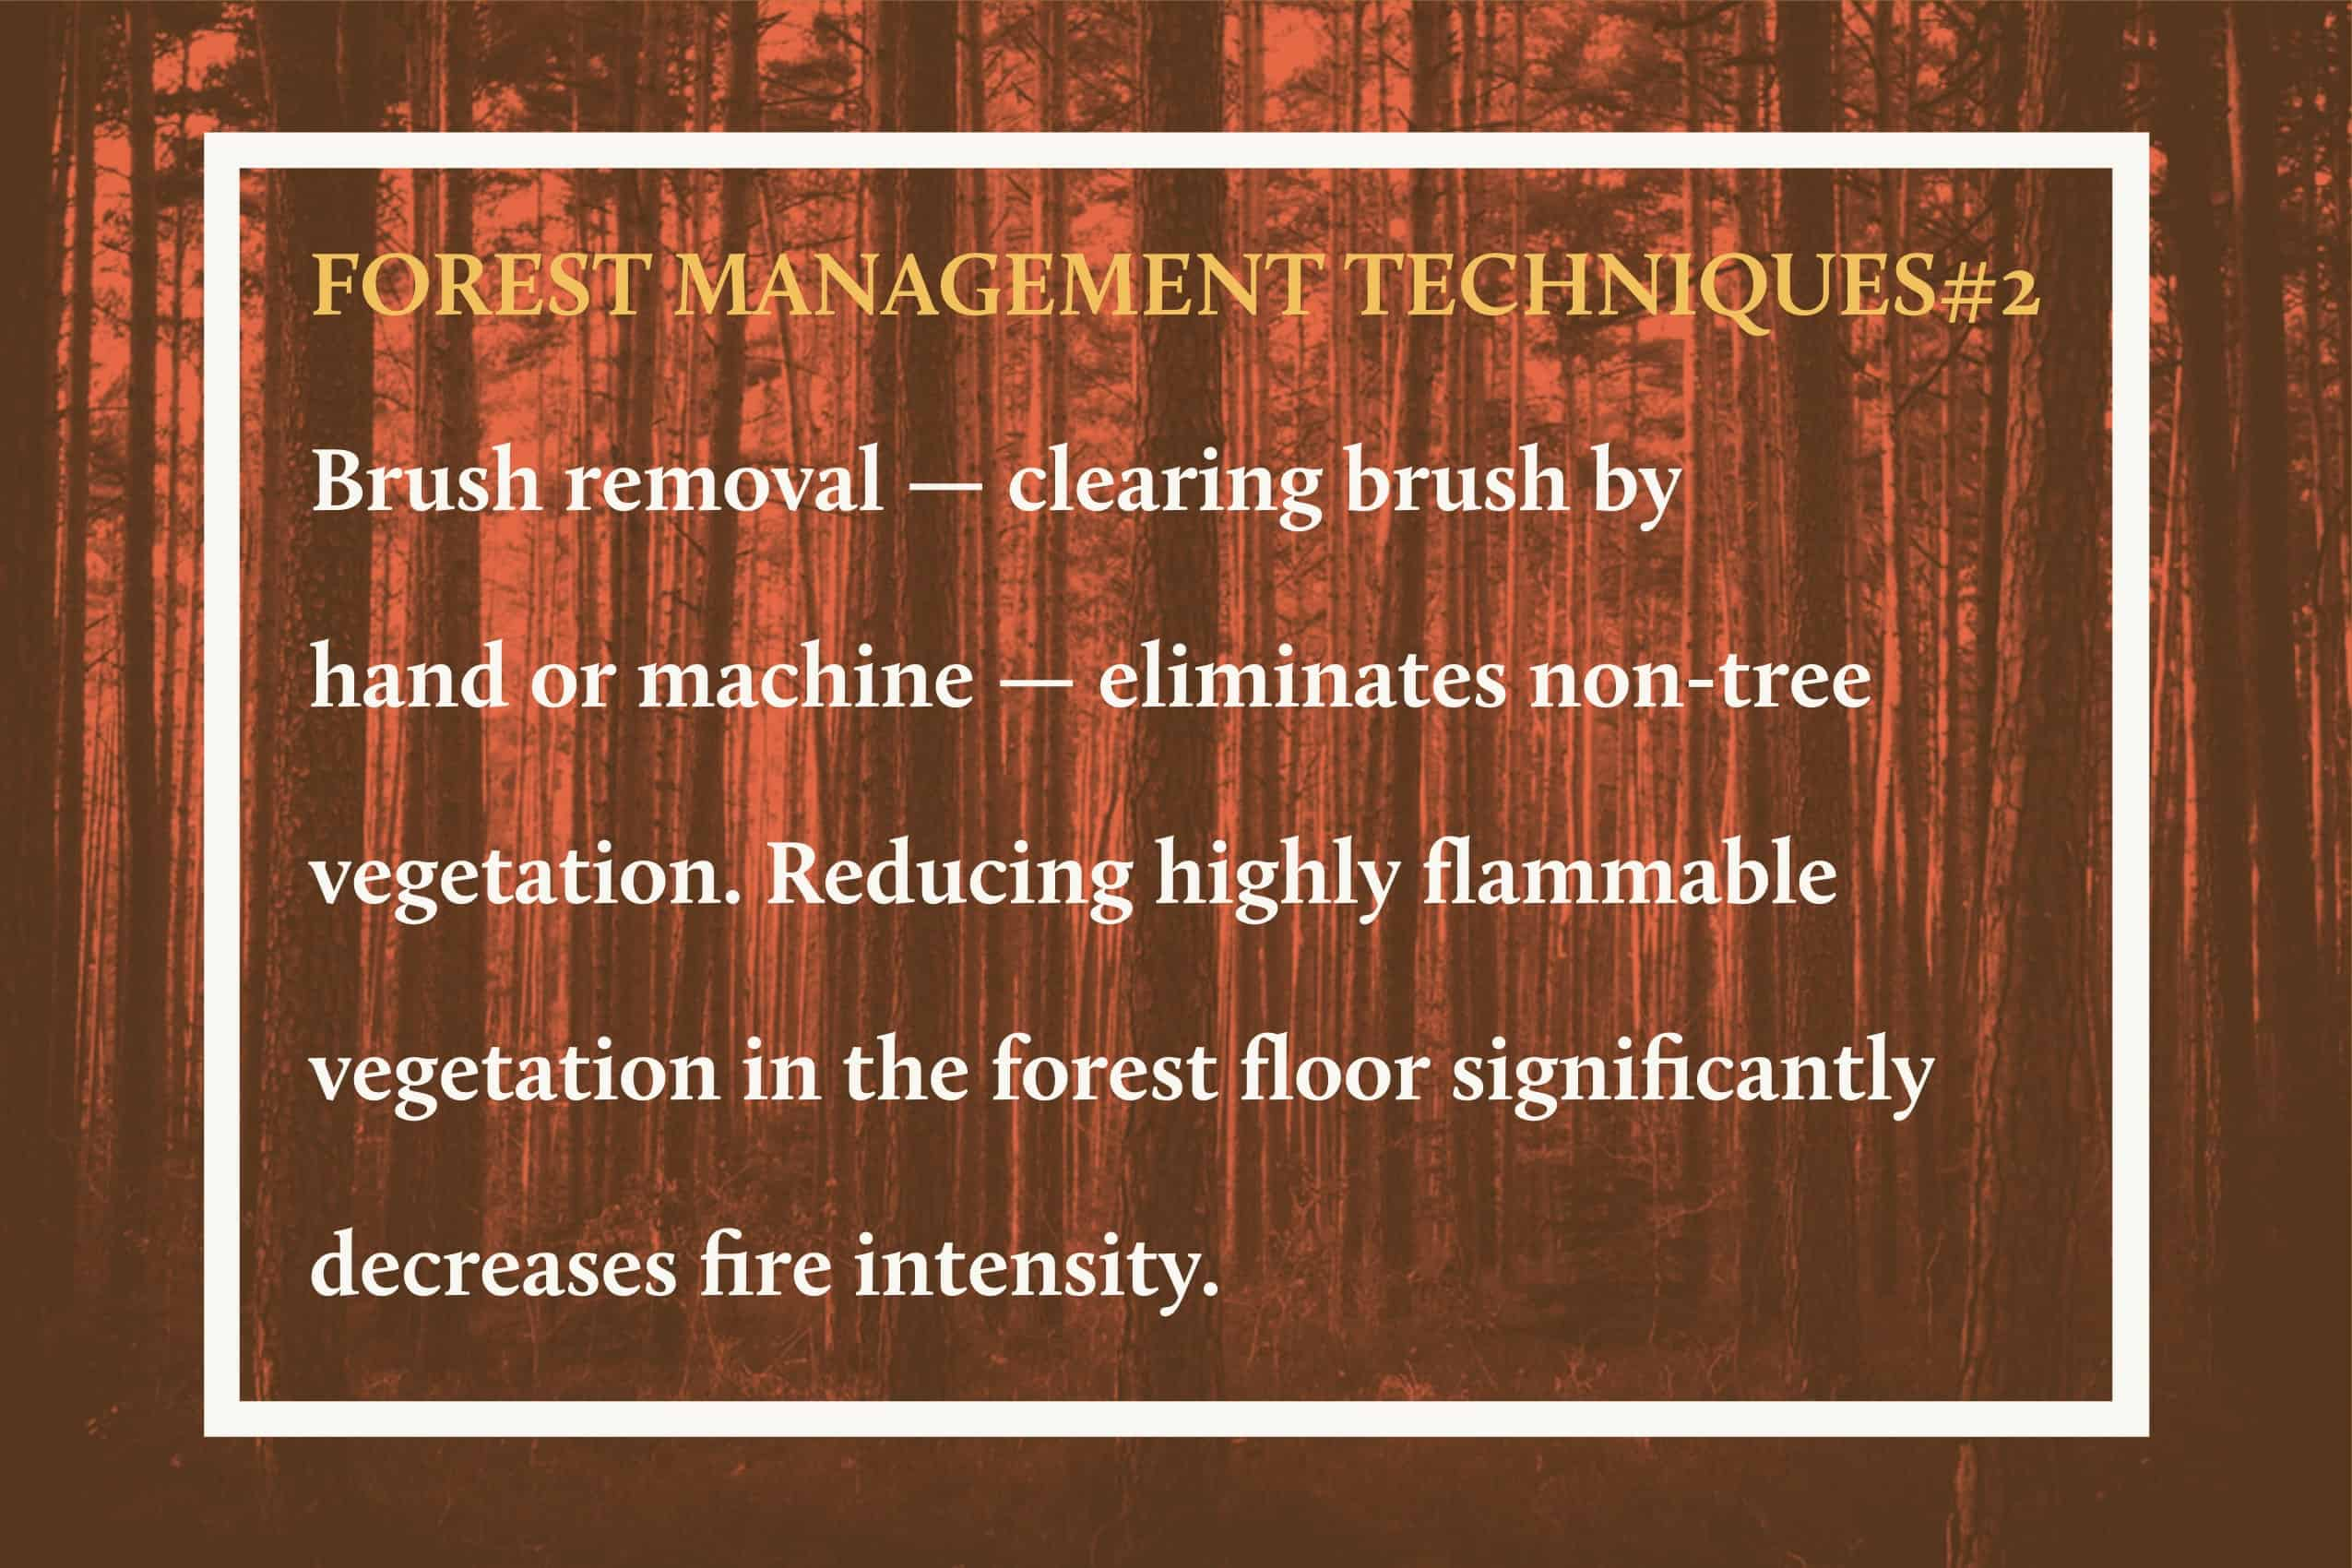 Forest Management Techniques 2